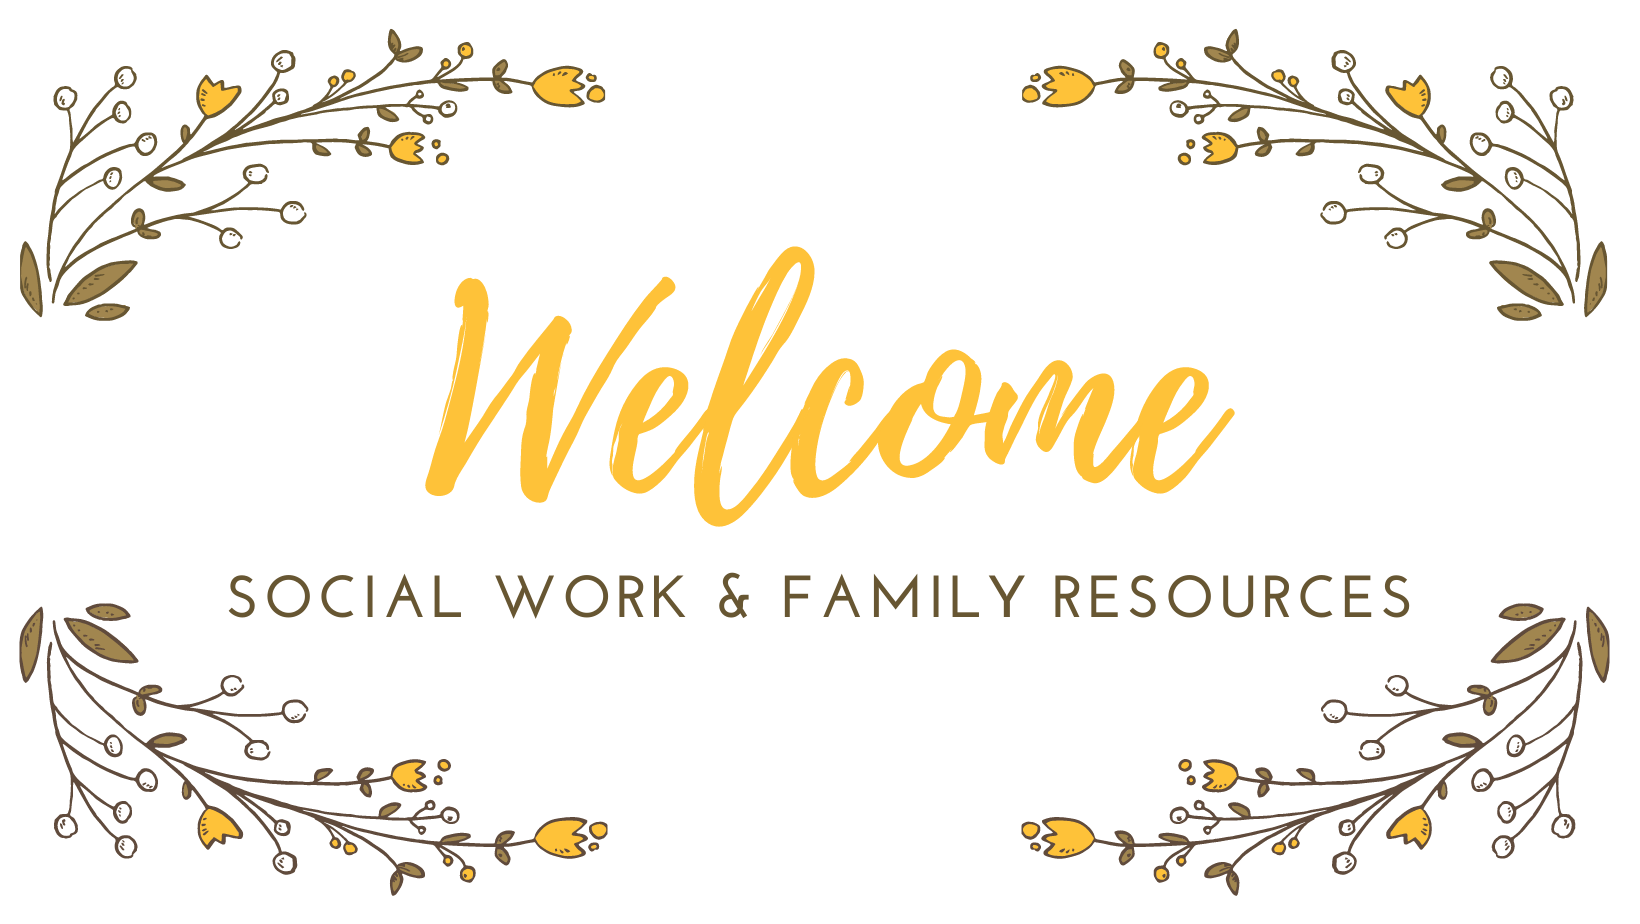 SOCIAL WORK & FAMILY RESOURCES